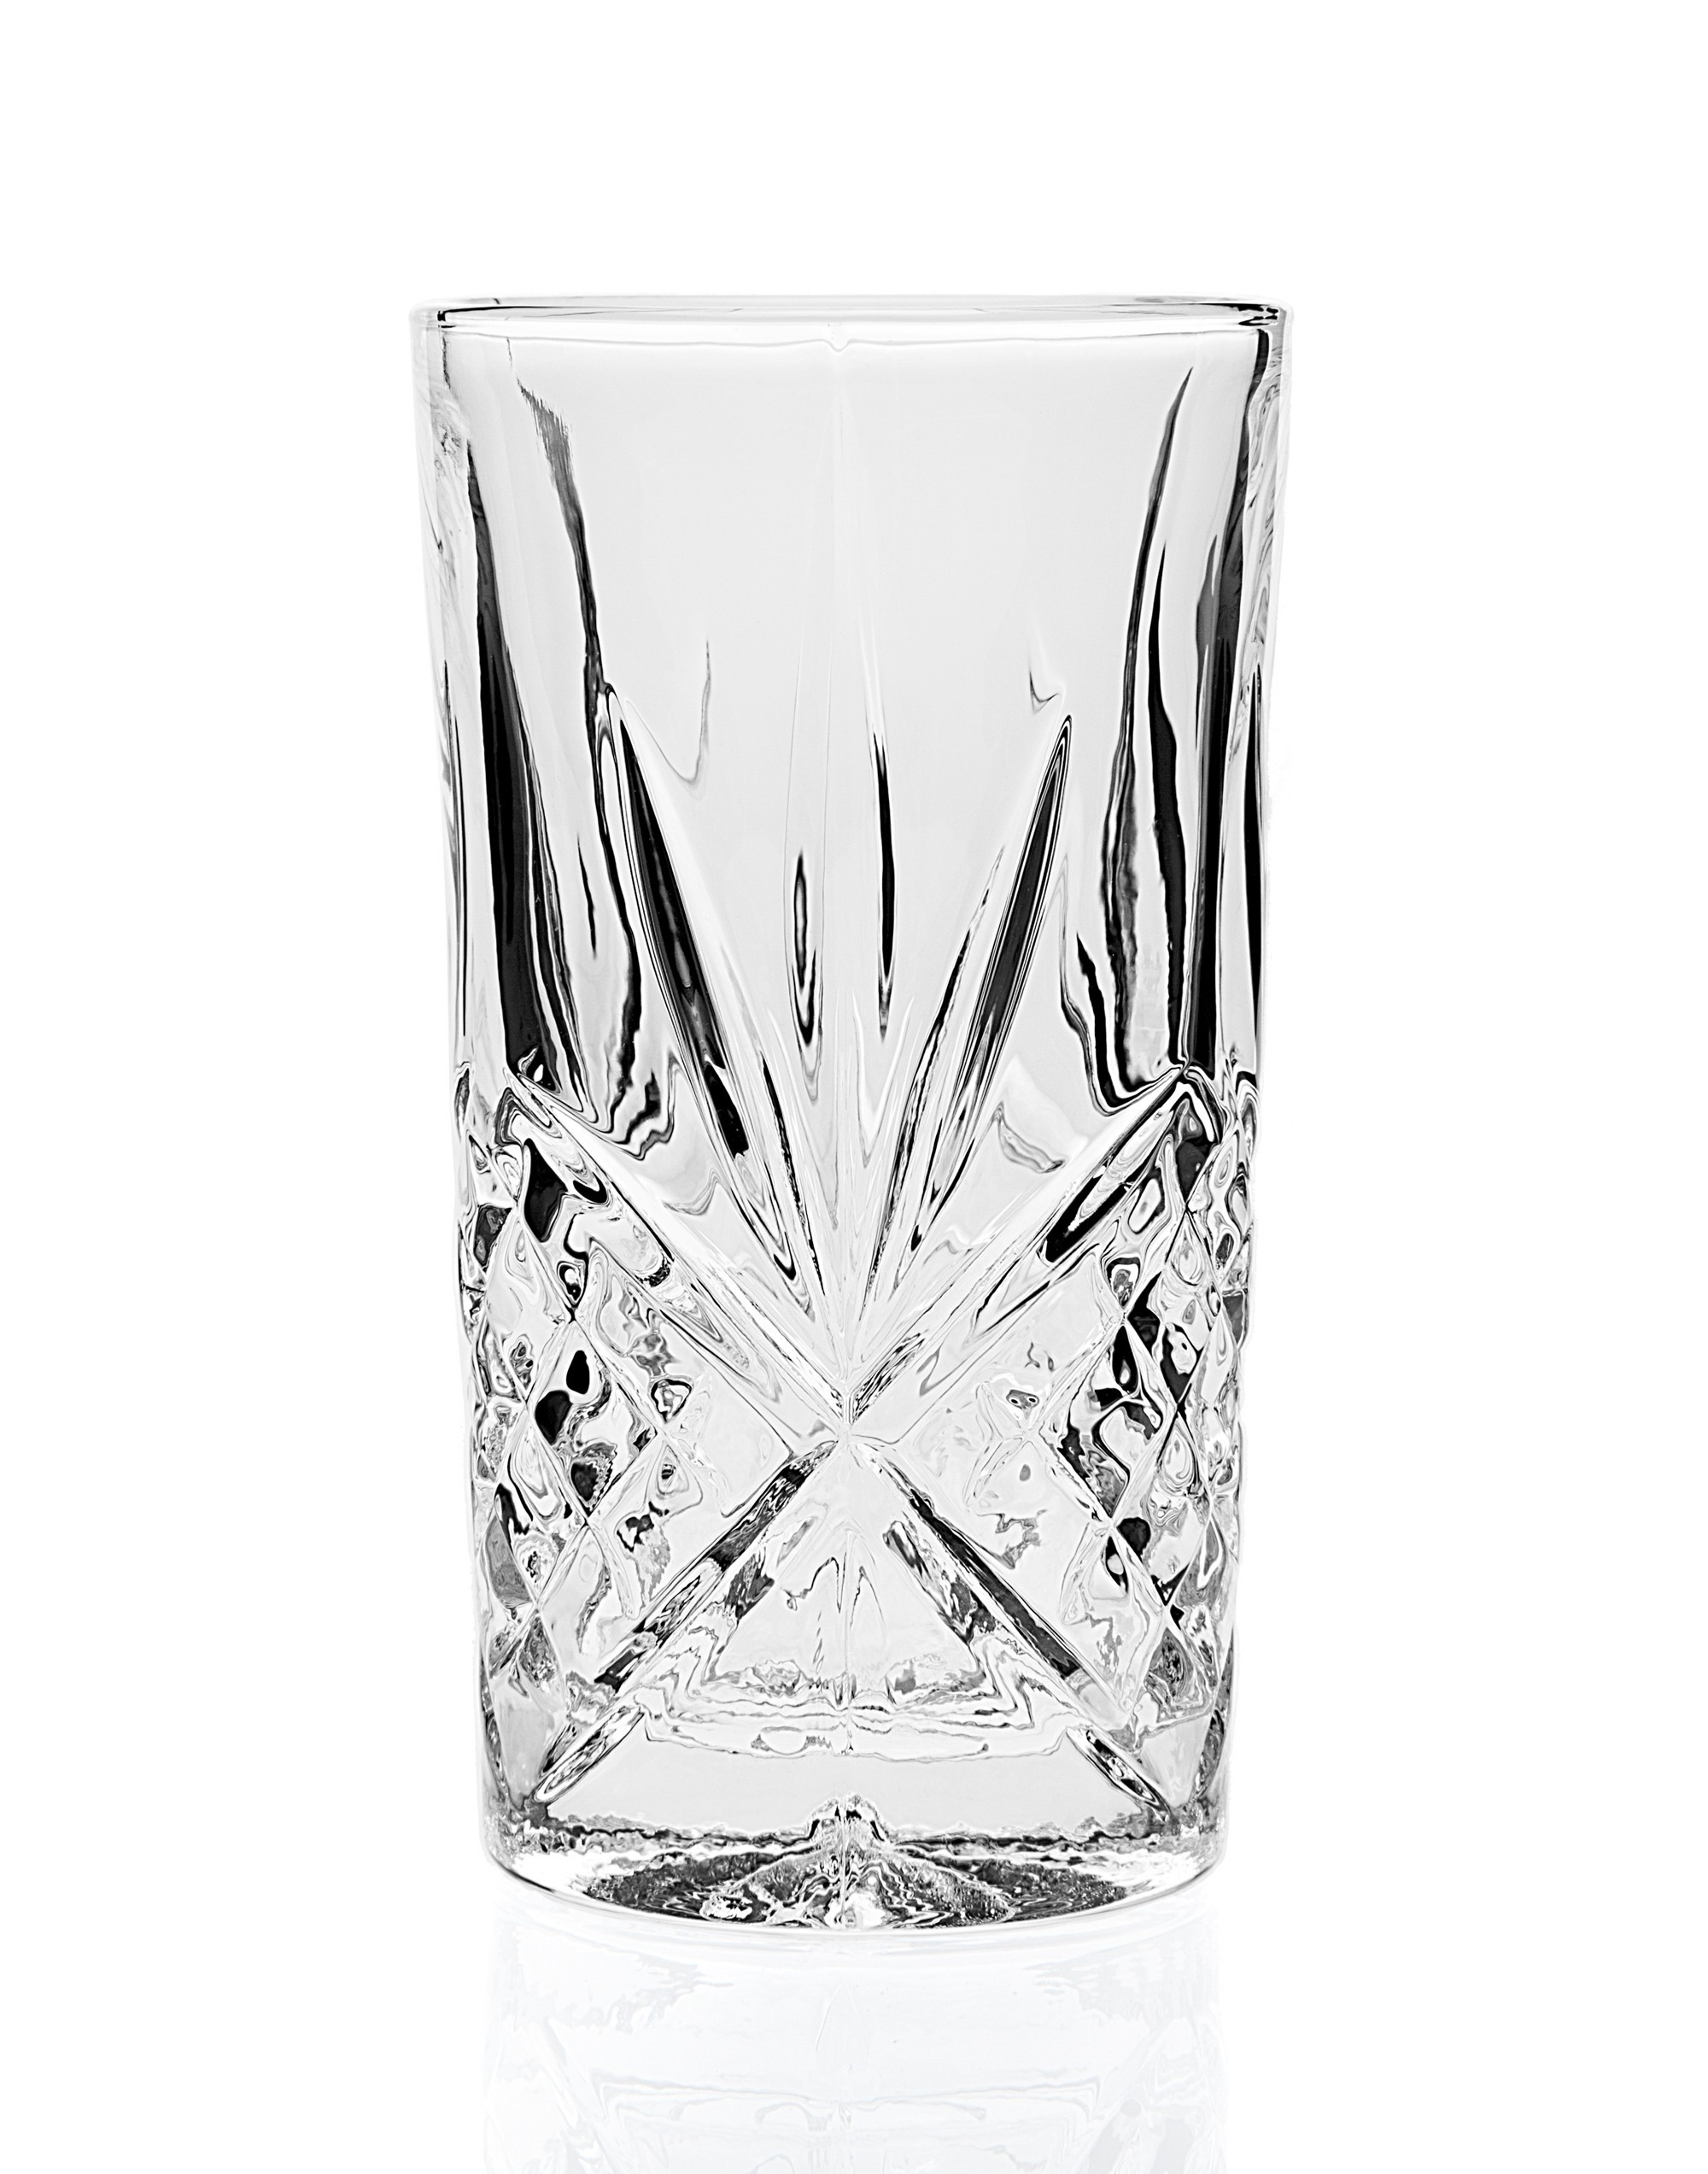 shannon crystal by godinger vase of dublin highball glasses intended for dublin highball set of 4